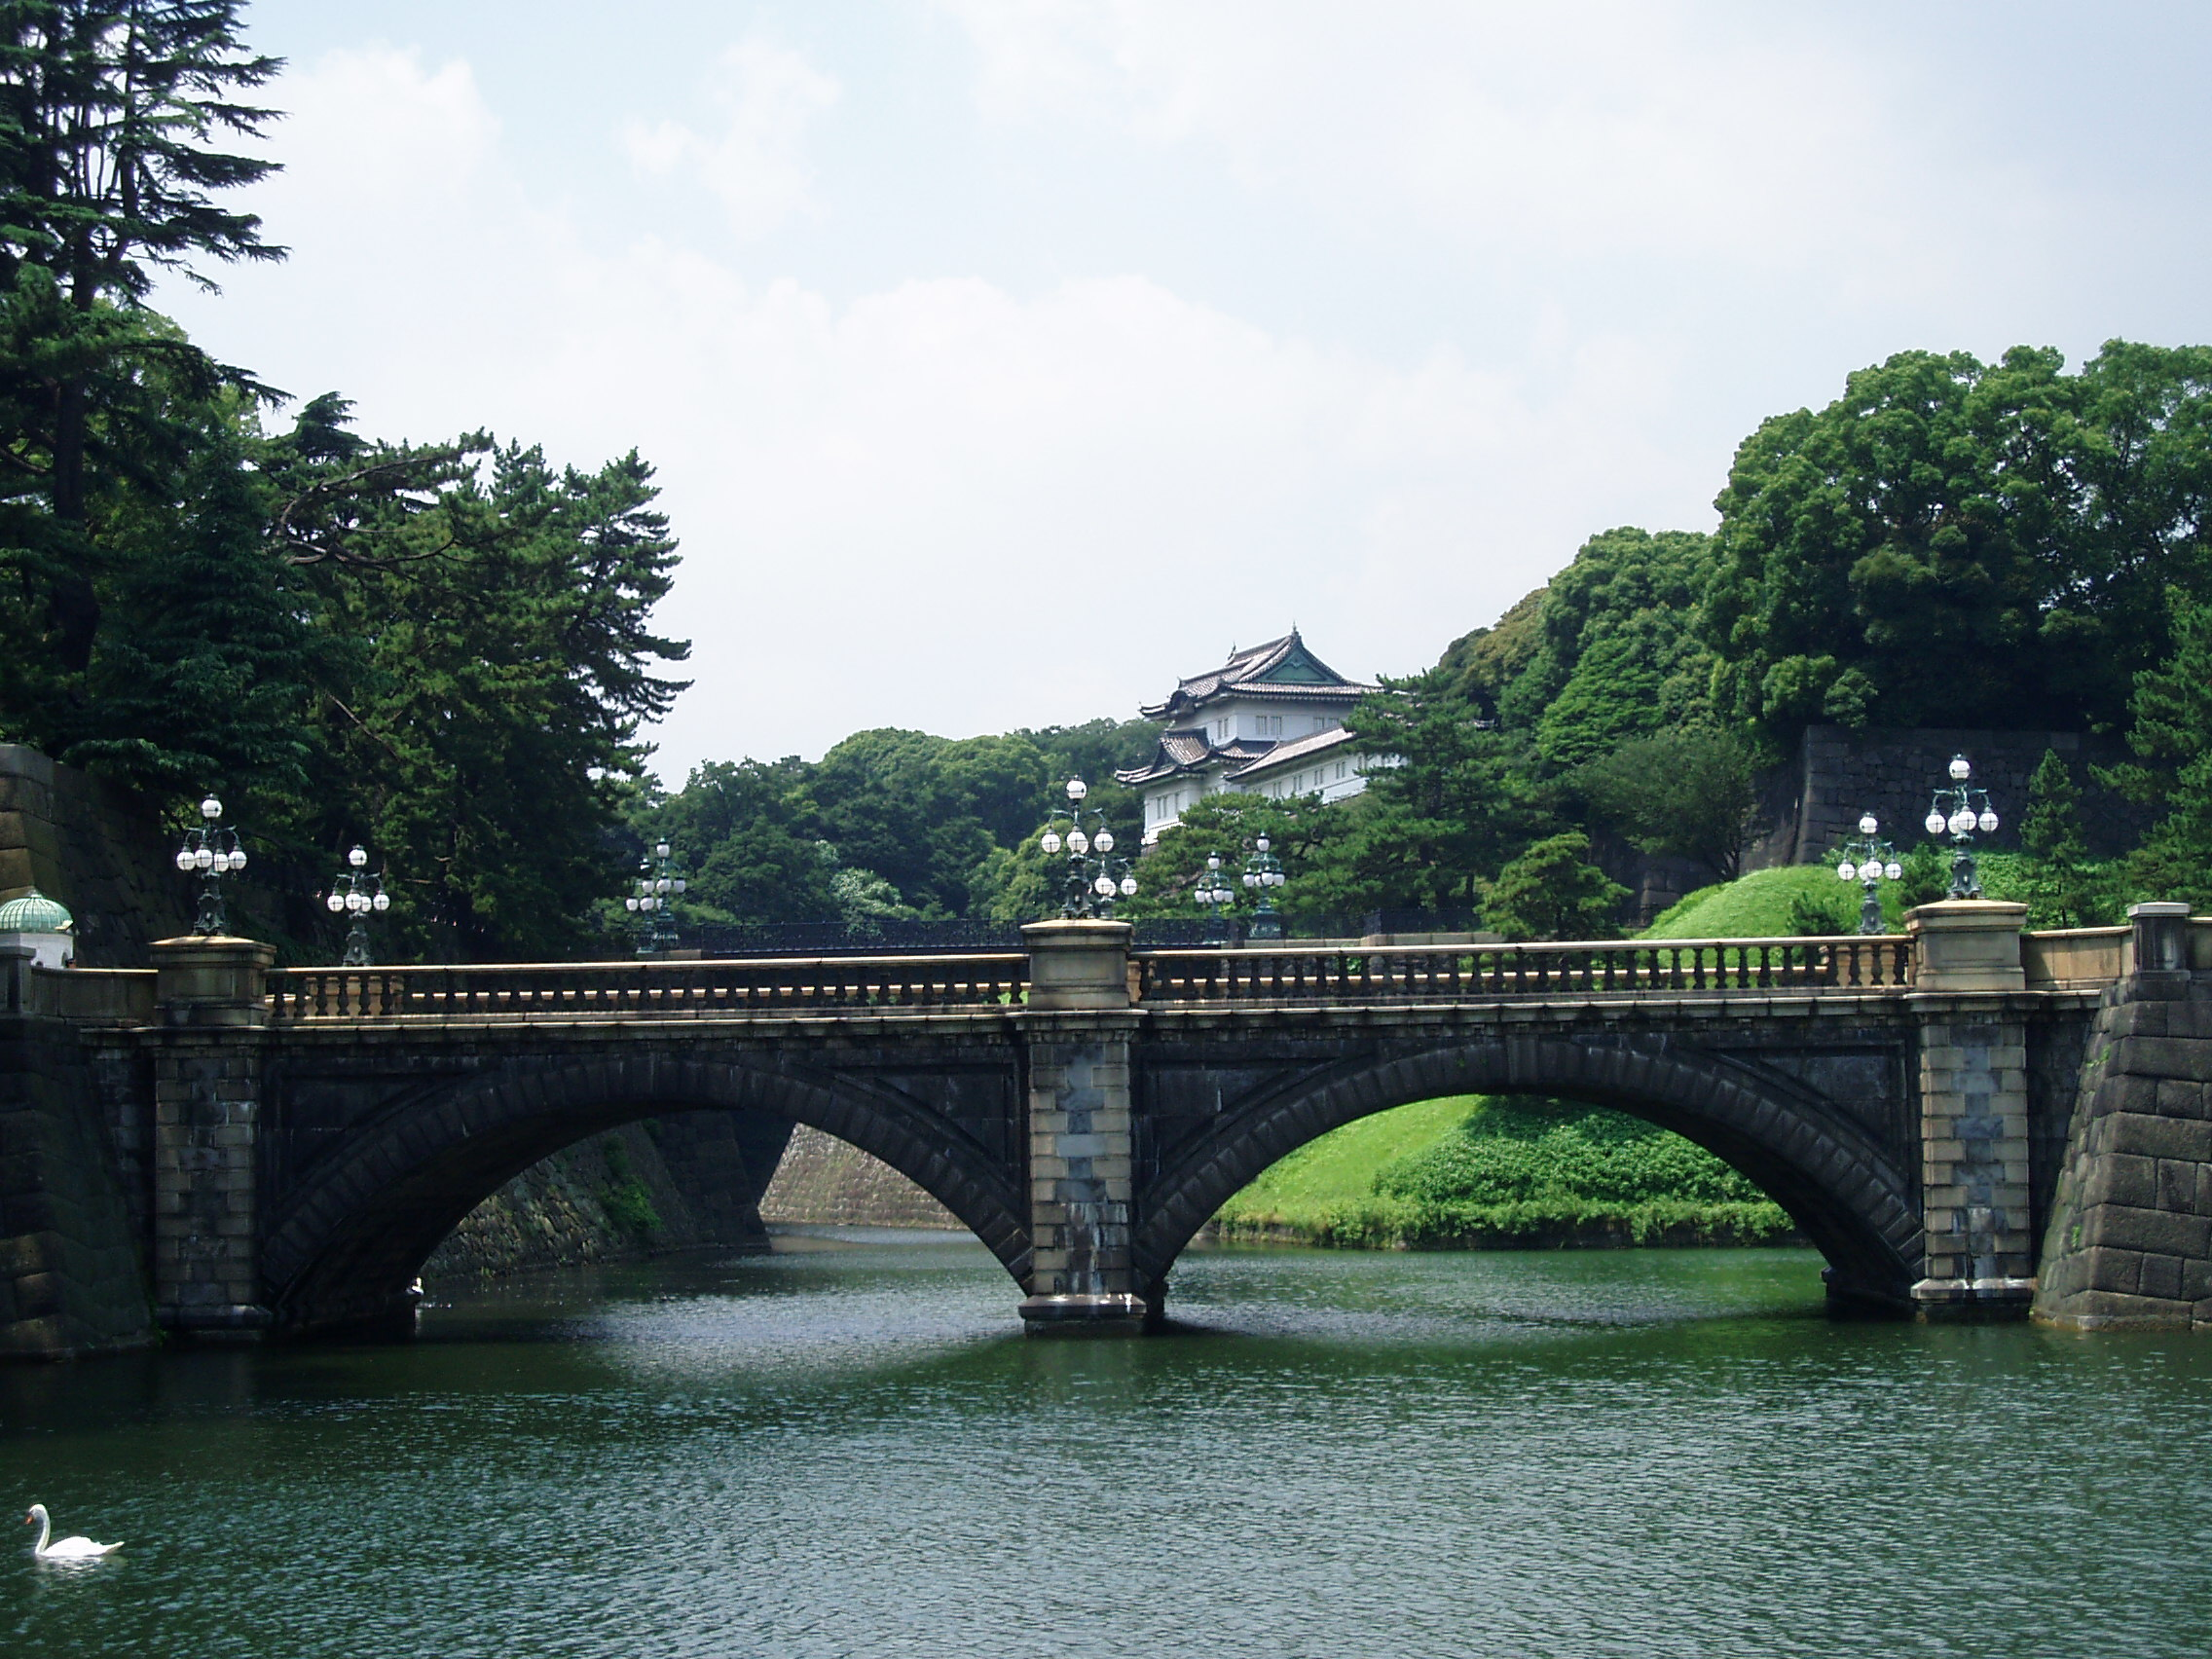 Tokyo's Imperial Palace, Japan